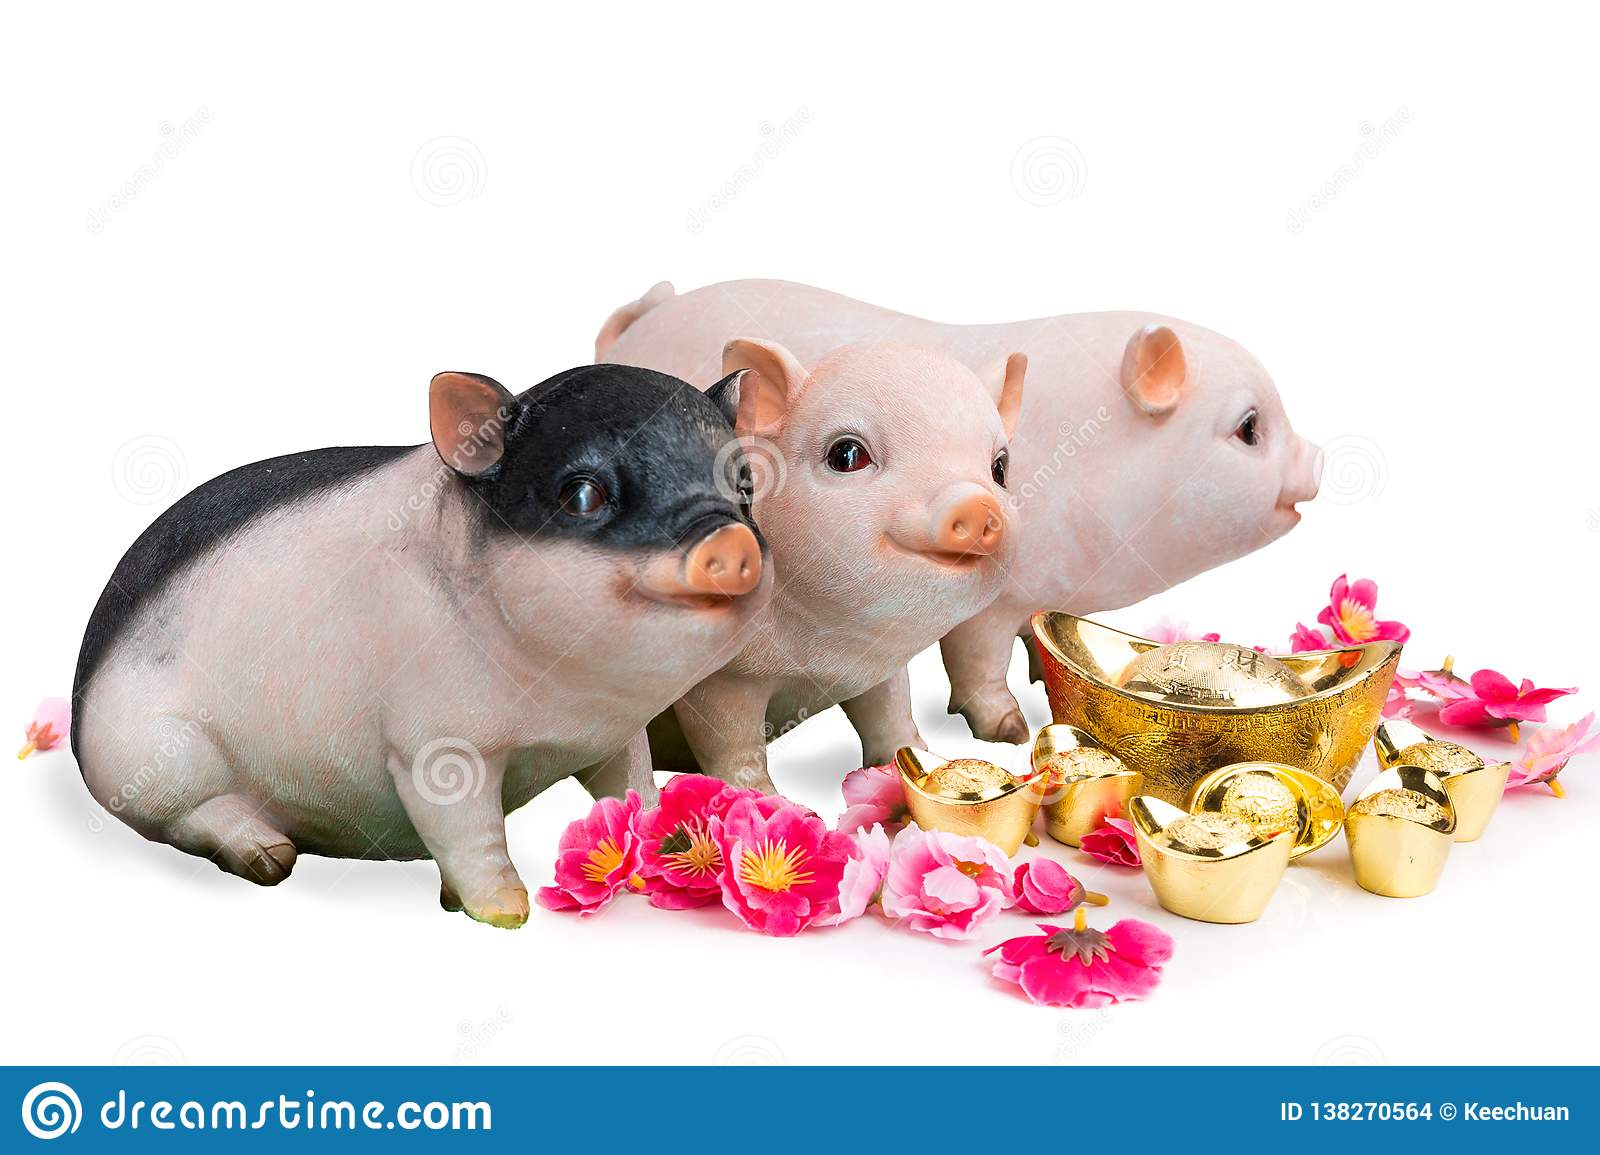 Pig boar with cherry blossom flower, 2019 Chinese New Year zodiac